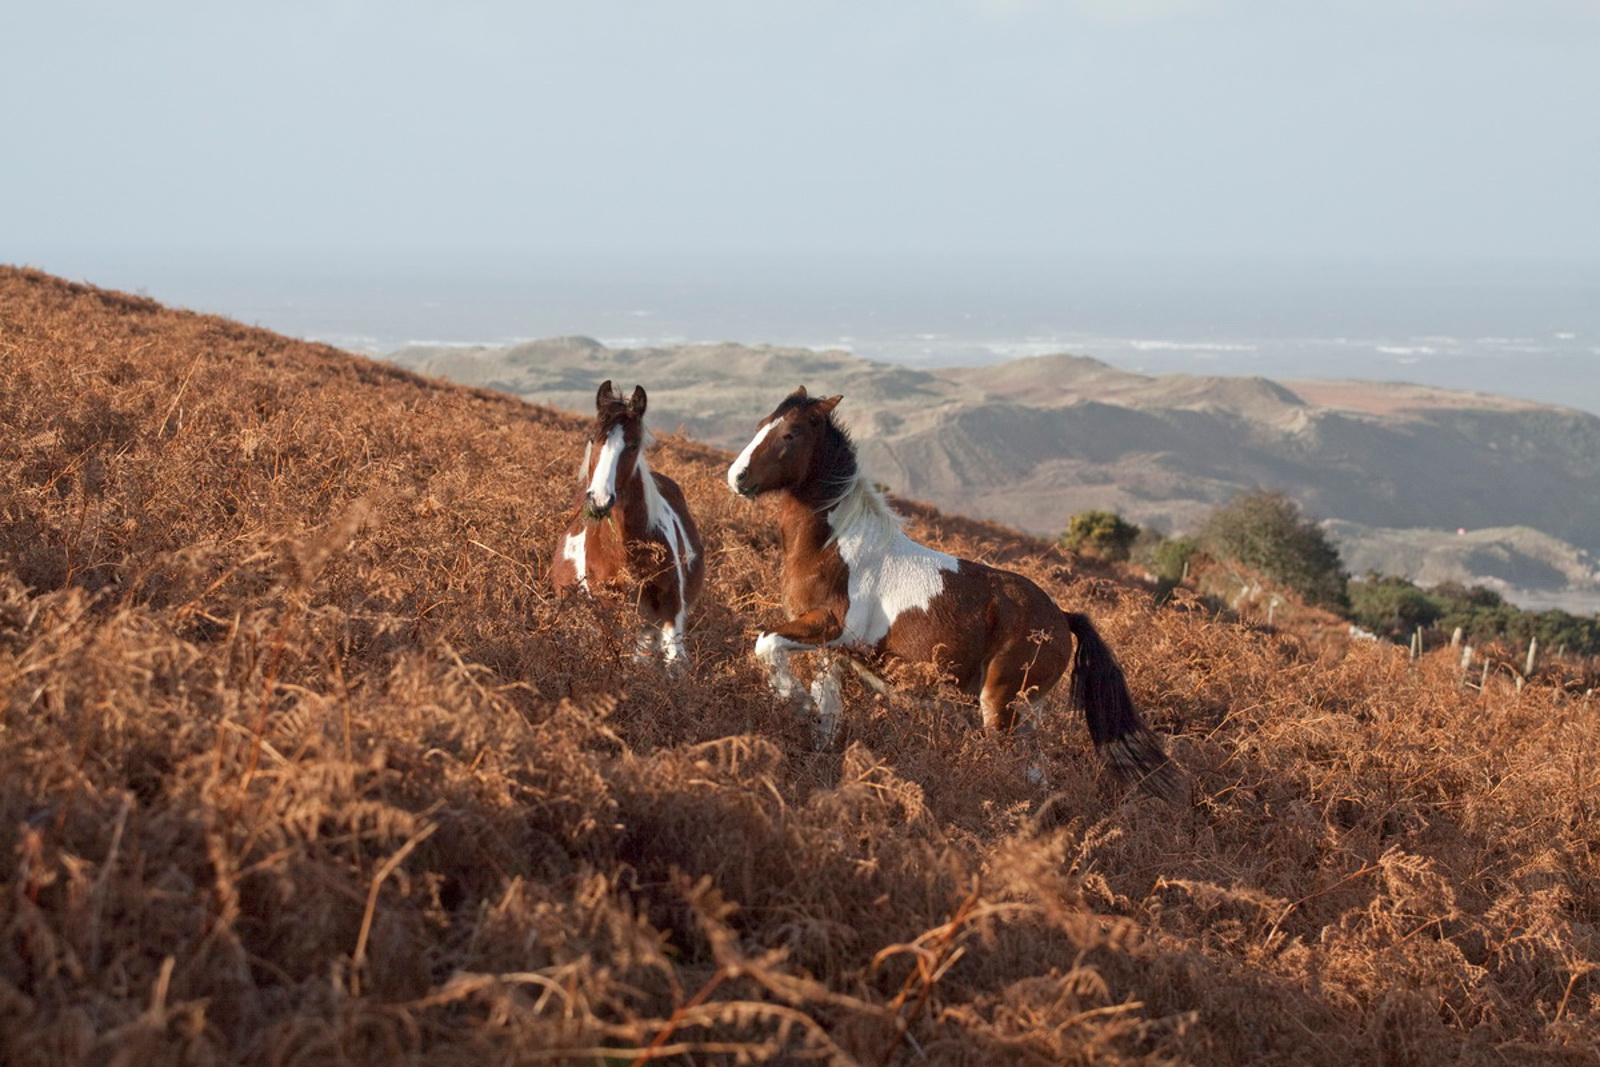 How Your Diet Can Help Save Wild Horses